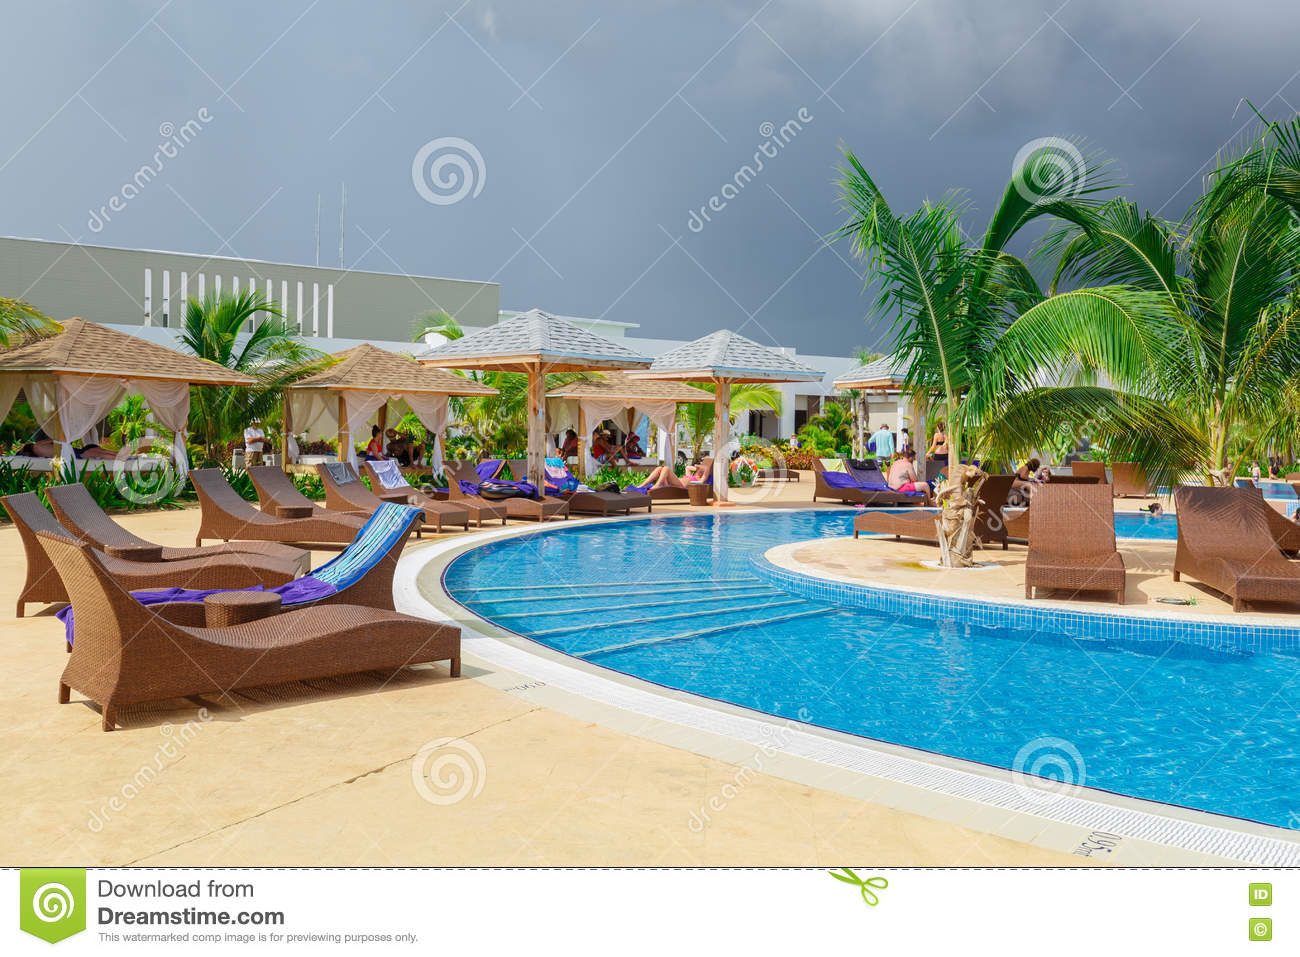 Inviting view of a curved wide open comfortable swimming pool with people relaxing and enjoying their time